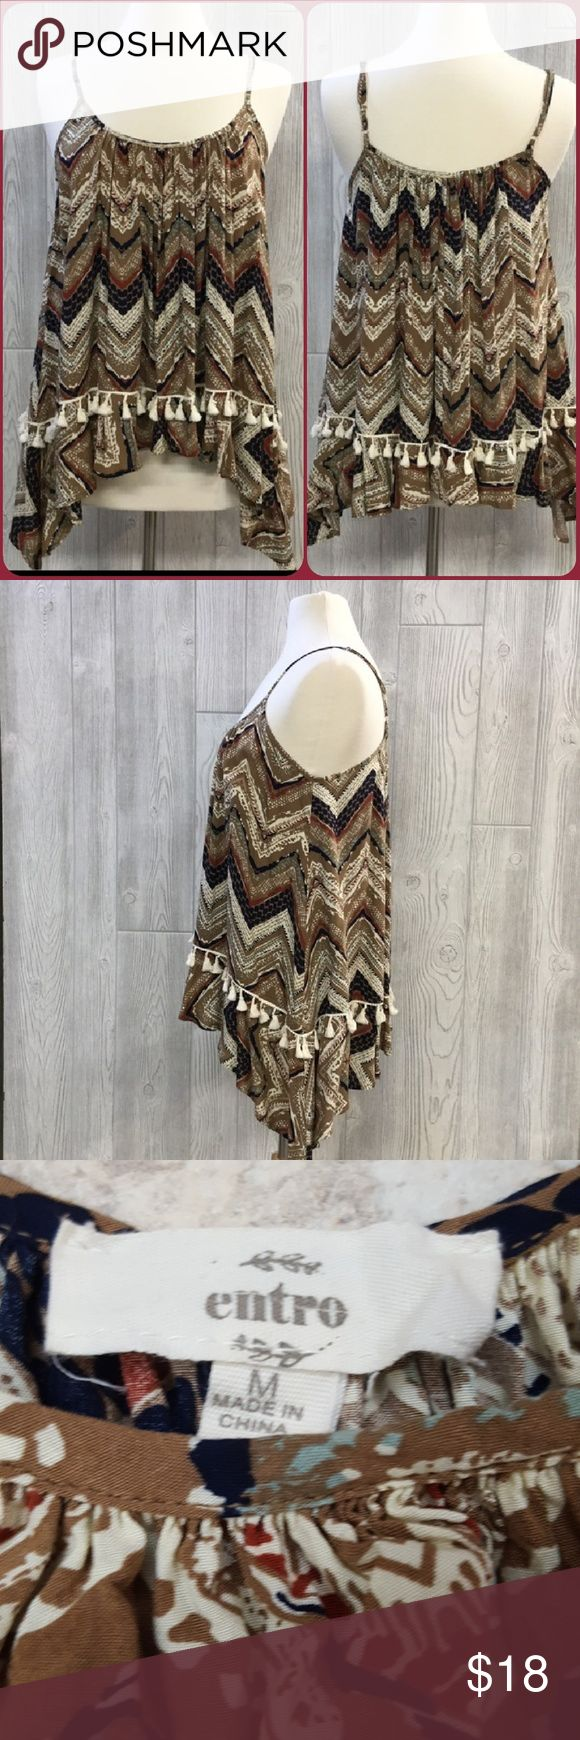 """⚘New! Hanky hem tribal tank with tassels ❤💙❤ this but I just don't find myself reaching for it so has to go. Worn once and in pristine condition. Adjustable straps, loose and flowy. Length is 25"""" at the shortest points.  Lots of coordinating colors...would be super cute with mint capris and a neutral wedge. Toss on a denim jacket or corduroy blazer when it gets chilly. 100% rayon. Entro Tops Tank Tops"""